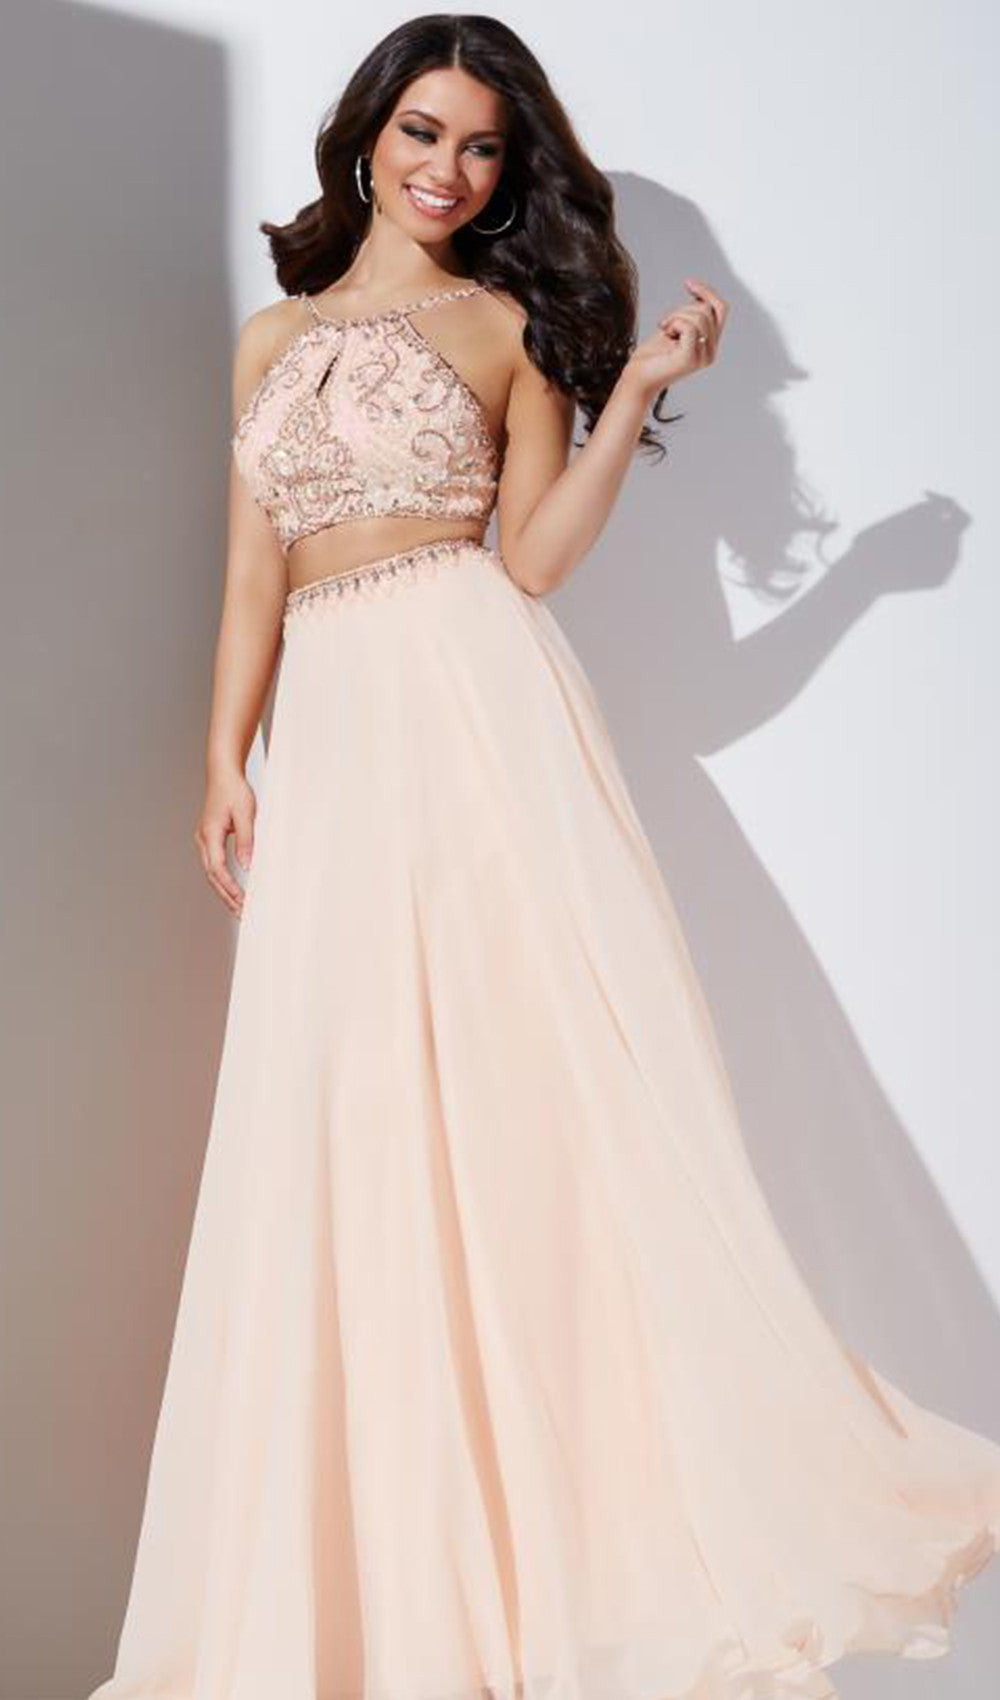 Long Two-Piece Beaded Dress | Jovani - STYLE 33848 | Schaffer's Bridal in Des Moines, Iowa